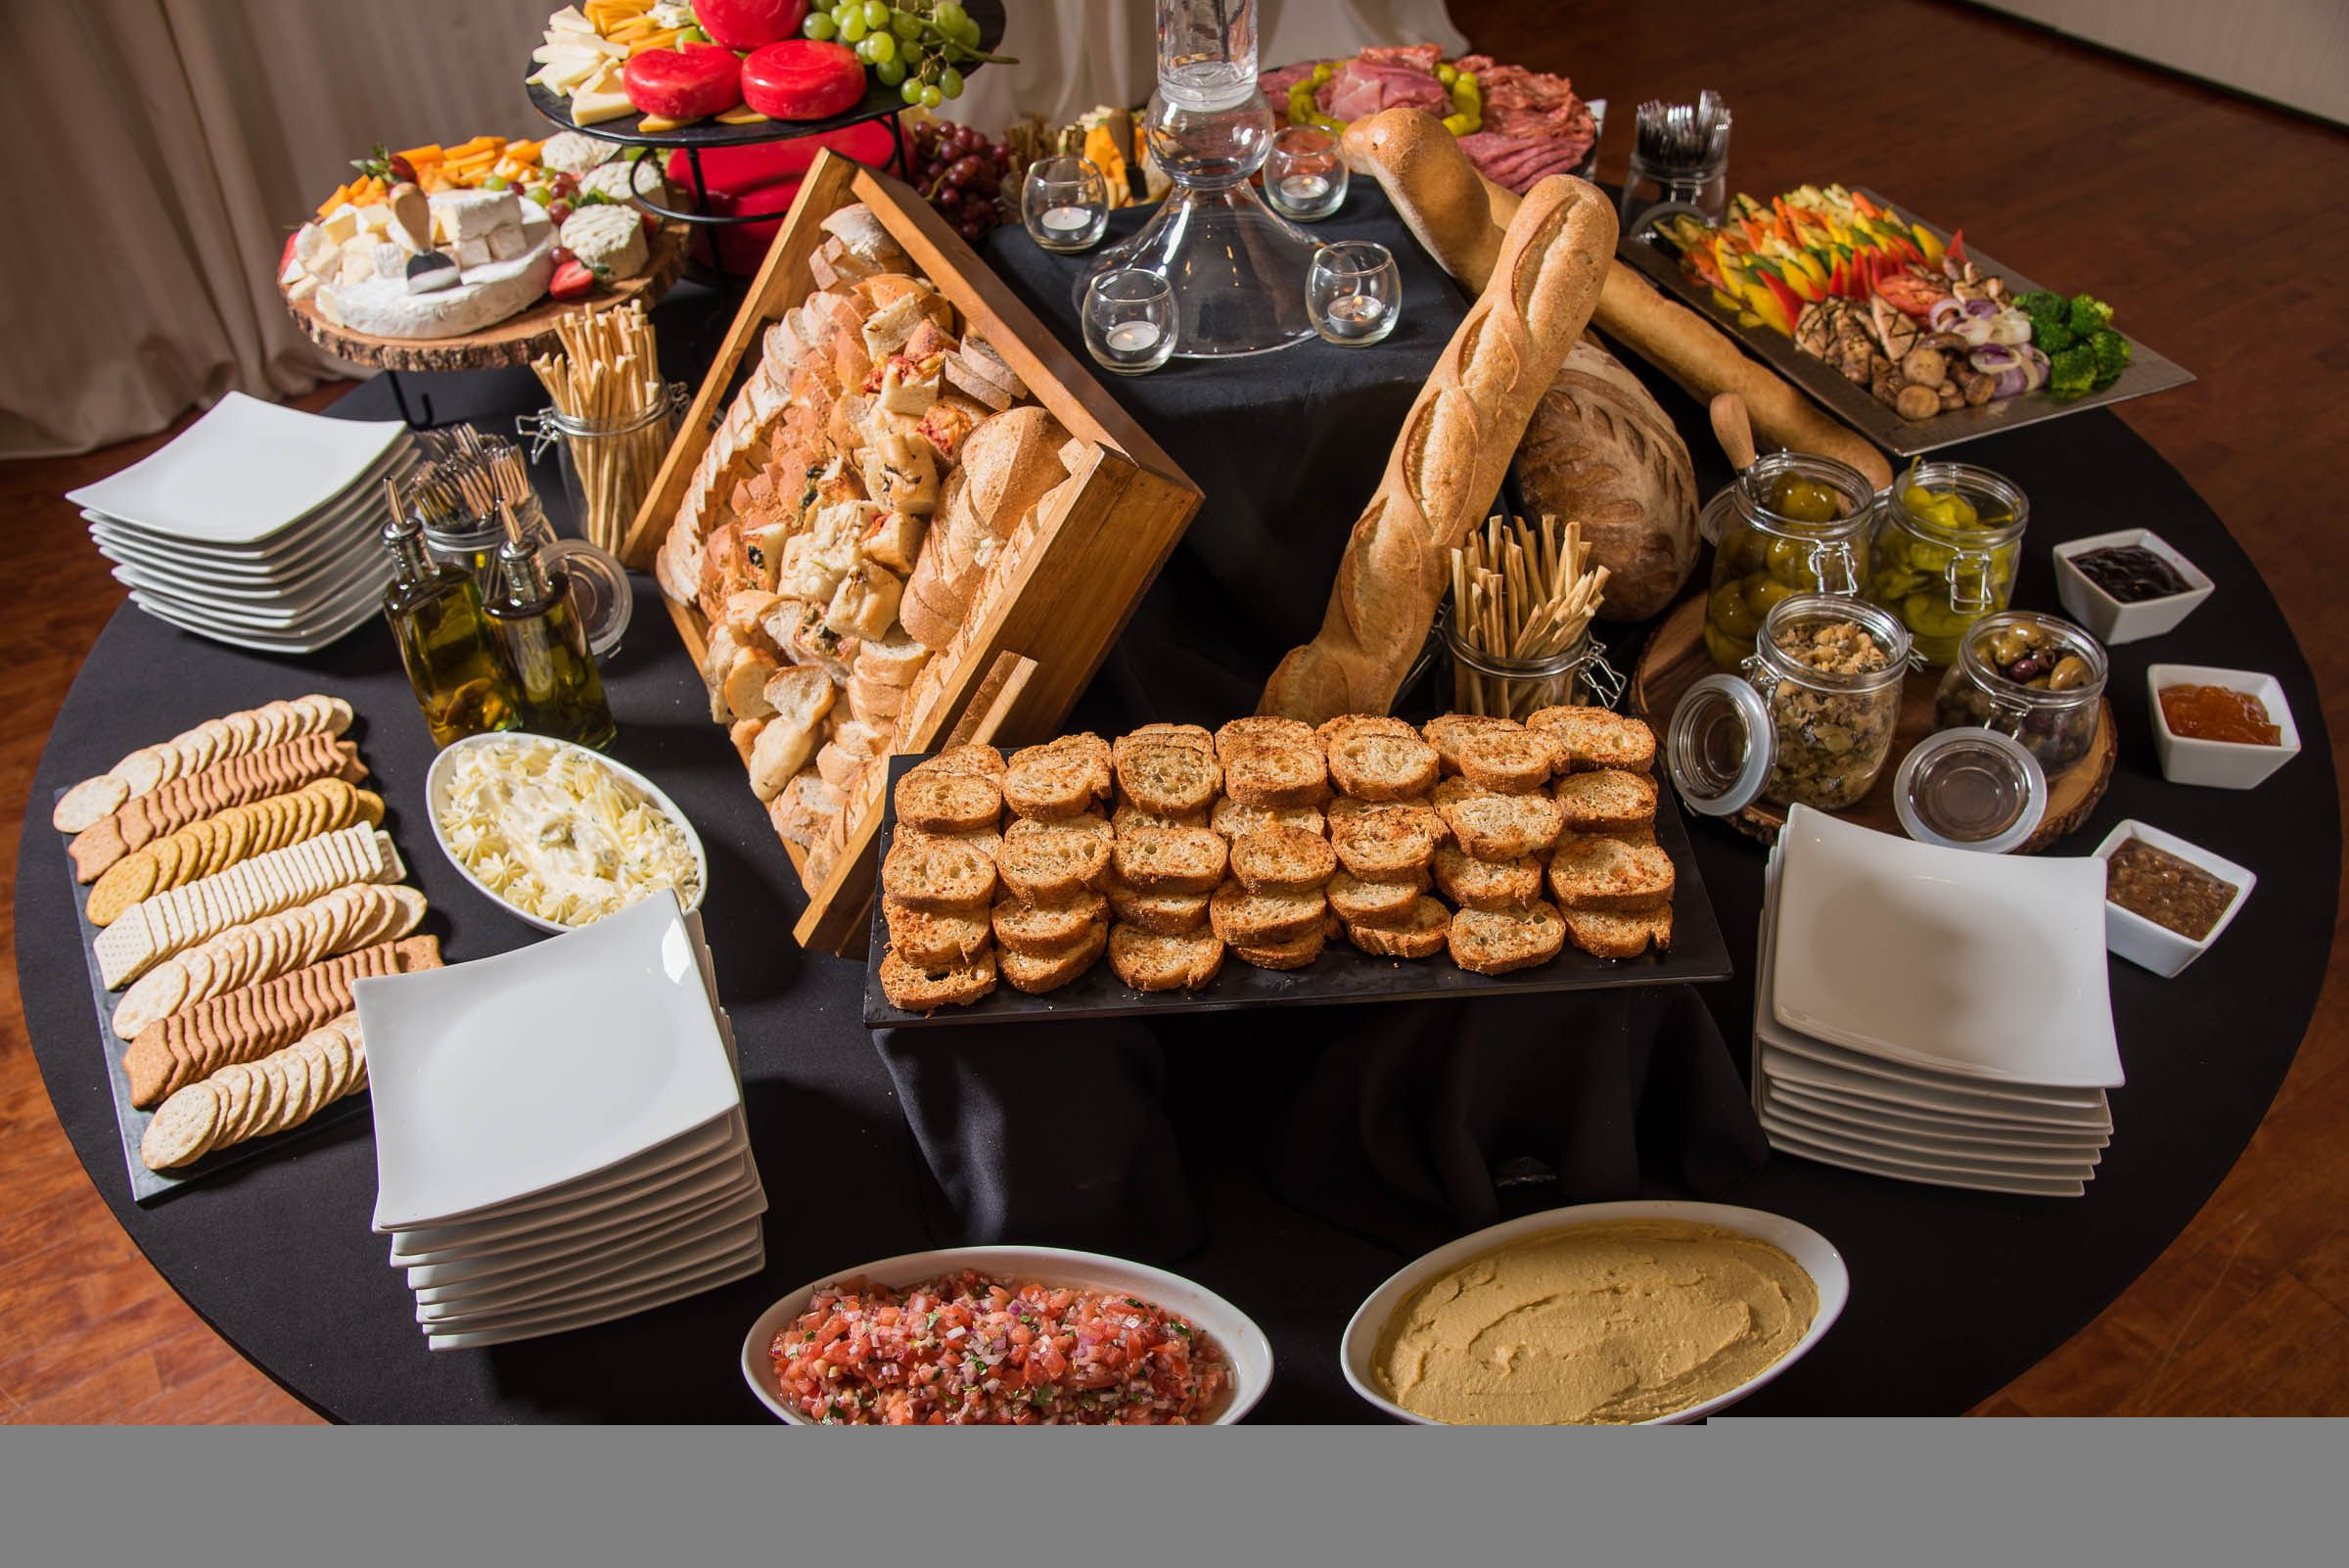 Cool Food Station Ideas For Your Wedding East Windsor Nj Camping Food Food And Drink Food Cravings Food Photography In 2020 Food And Drink Food Wedding Food